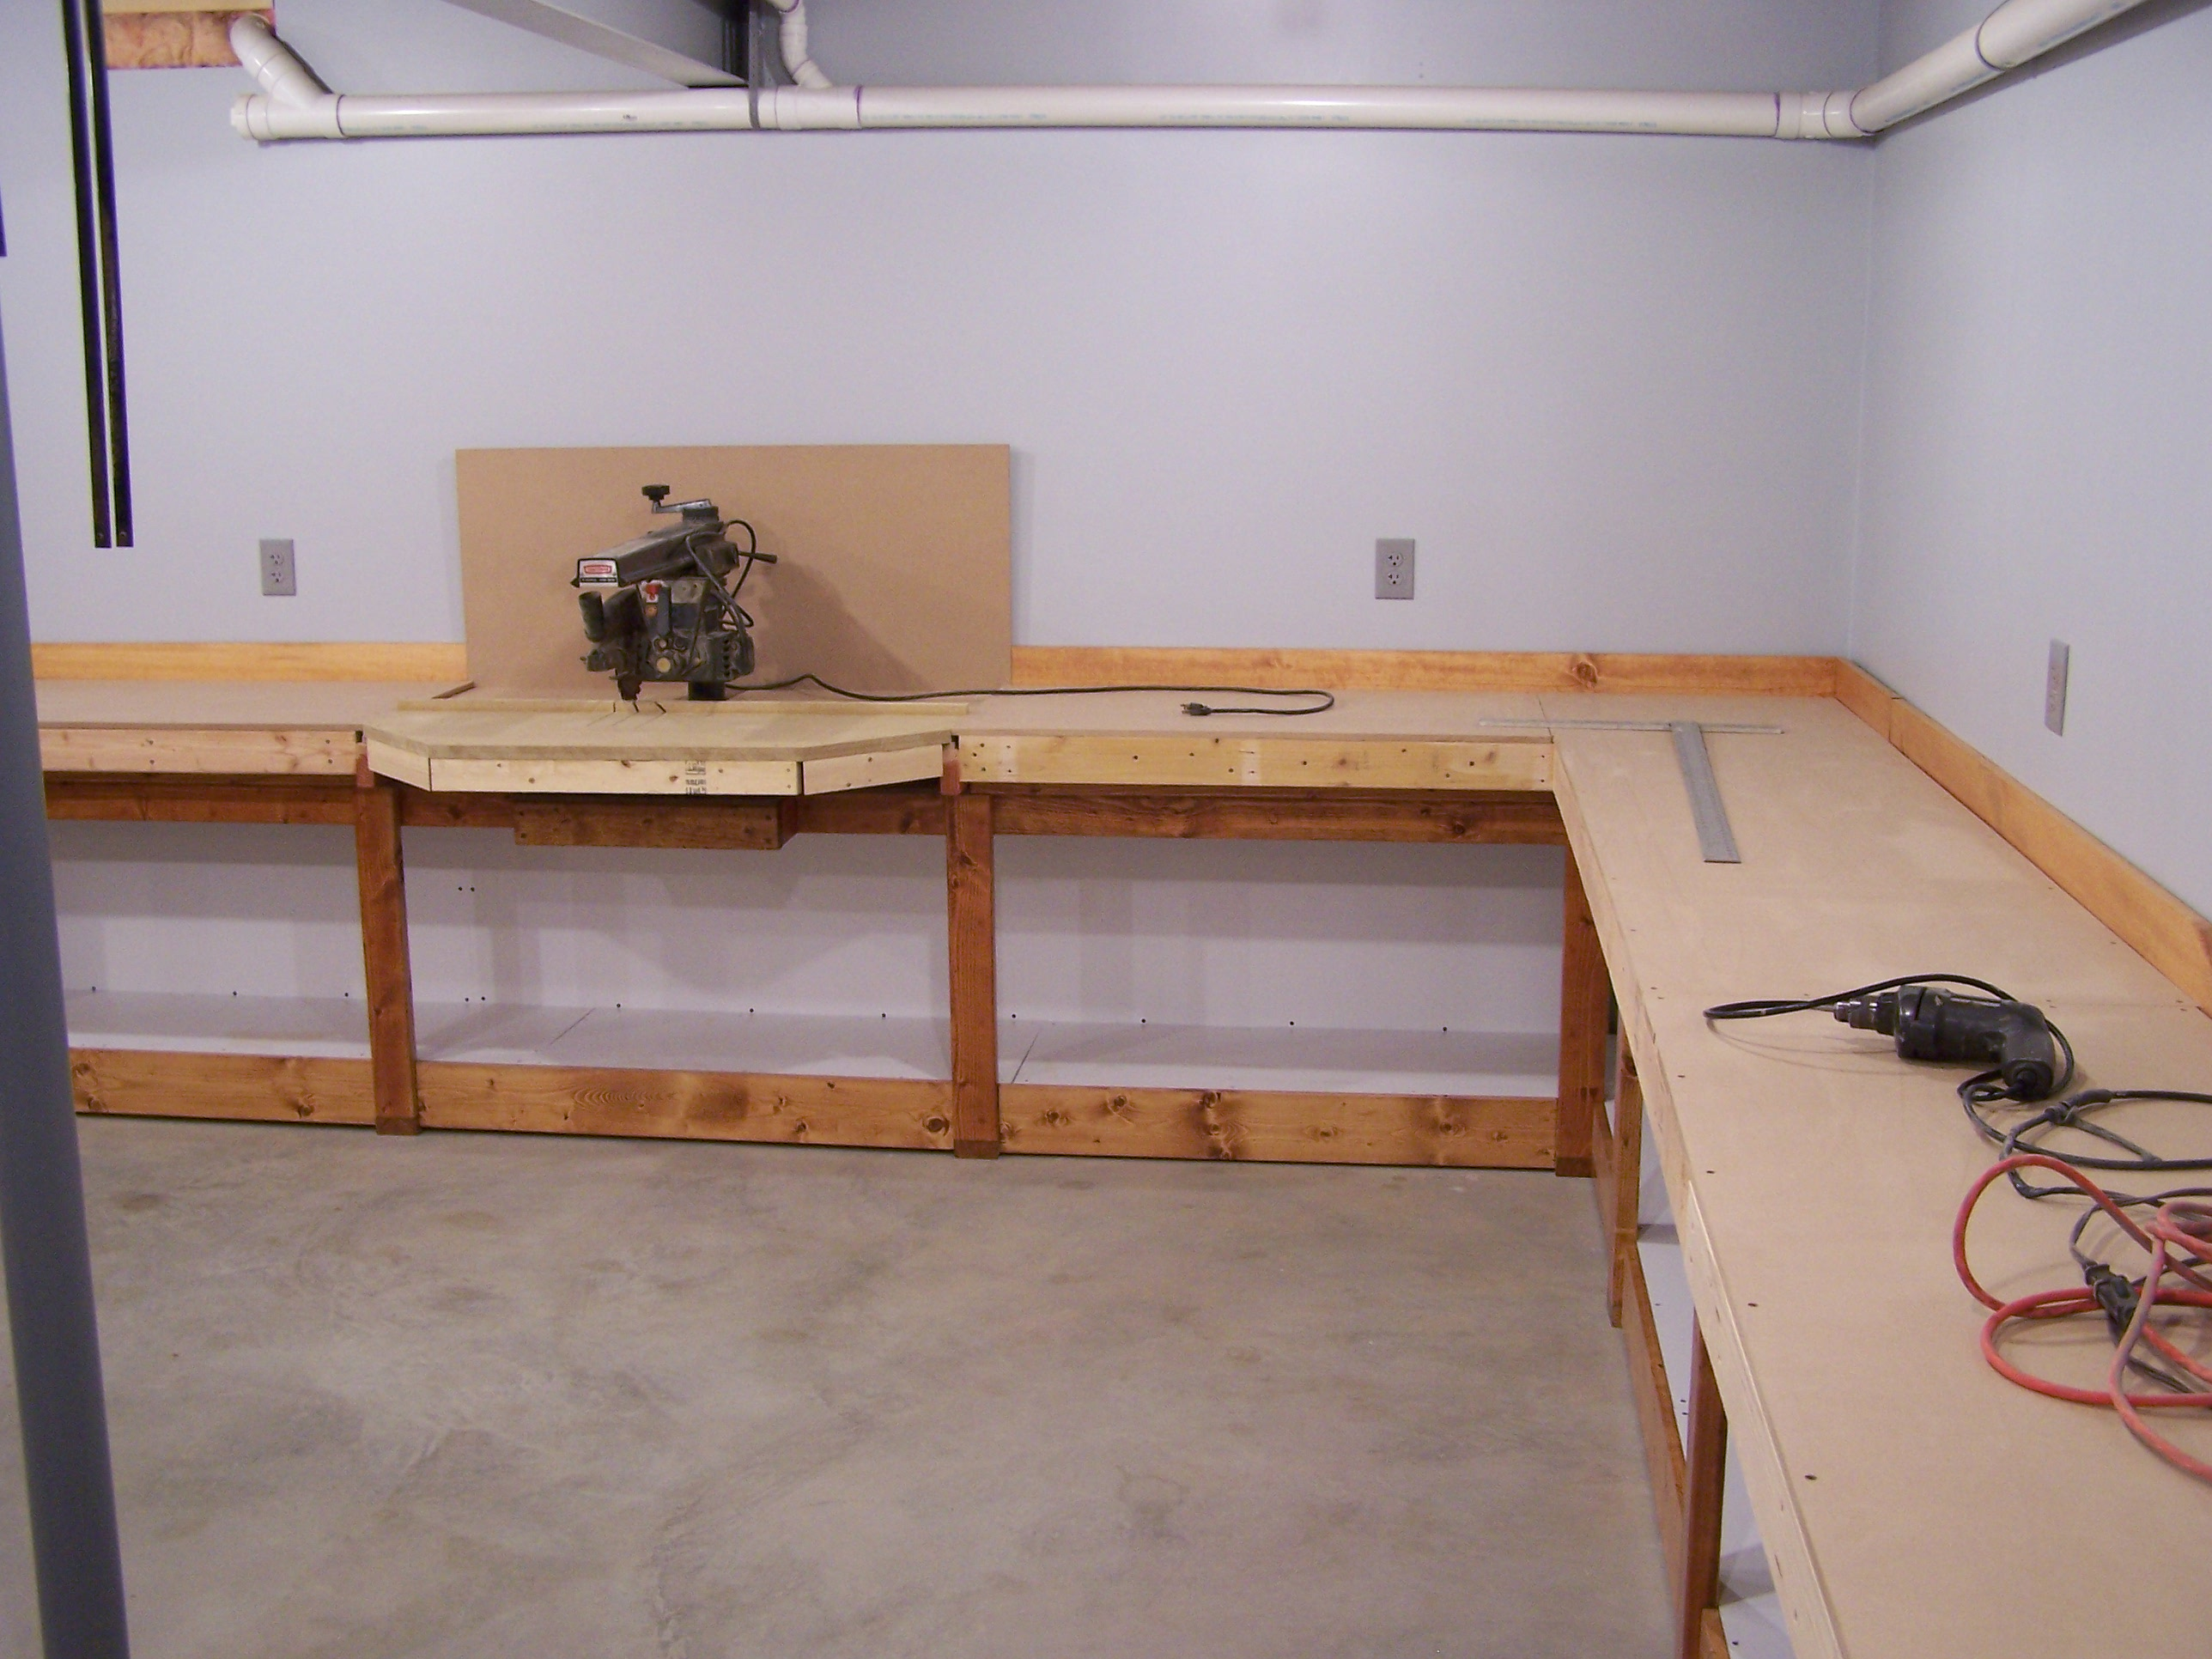 Radial+Arm+Saw+Bench+Plans Radial Arm Saw Bench Plans http://www ...